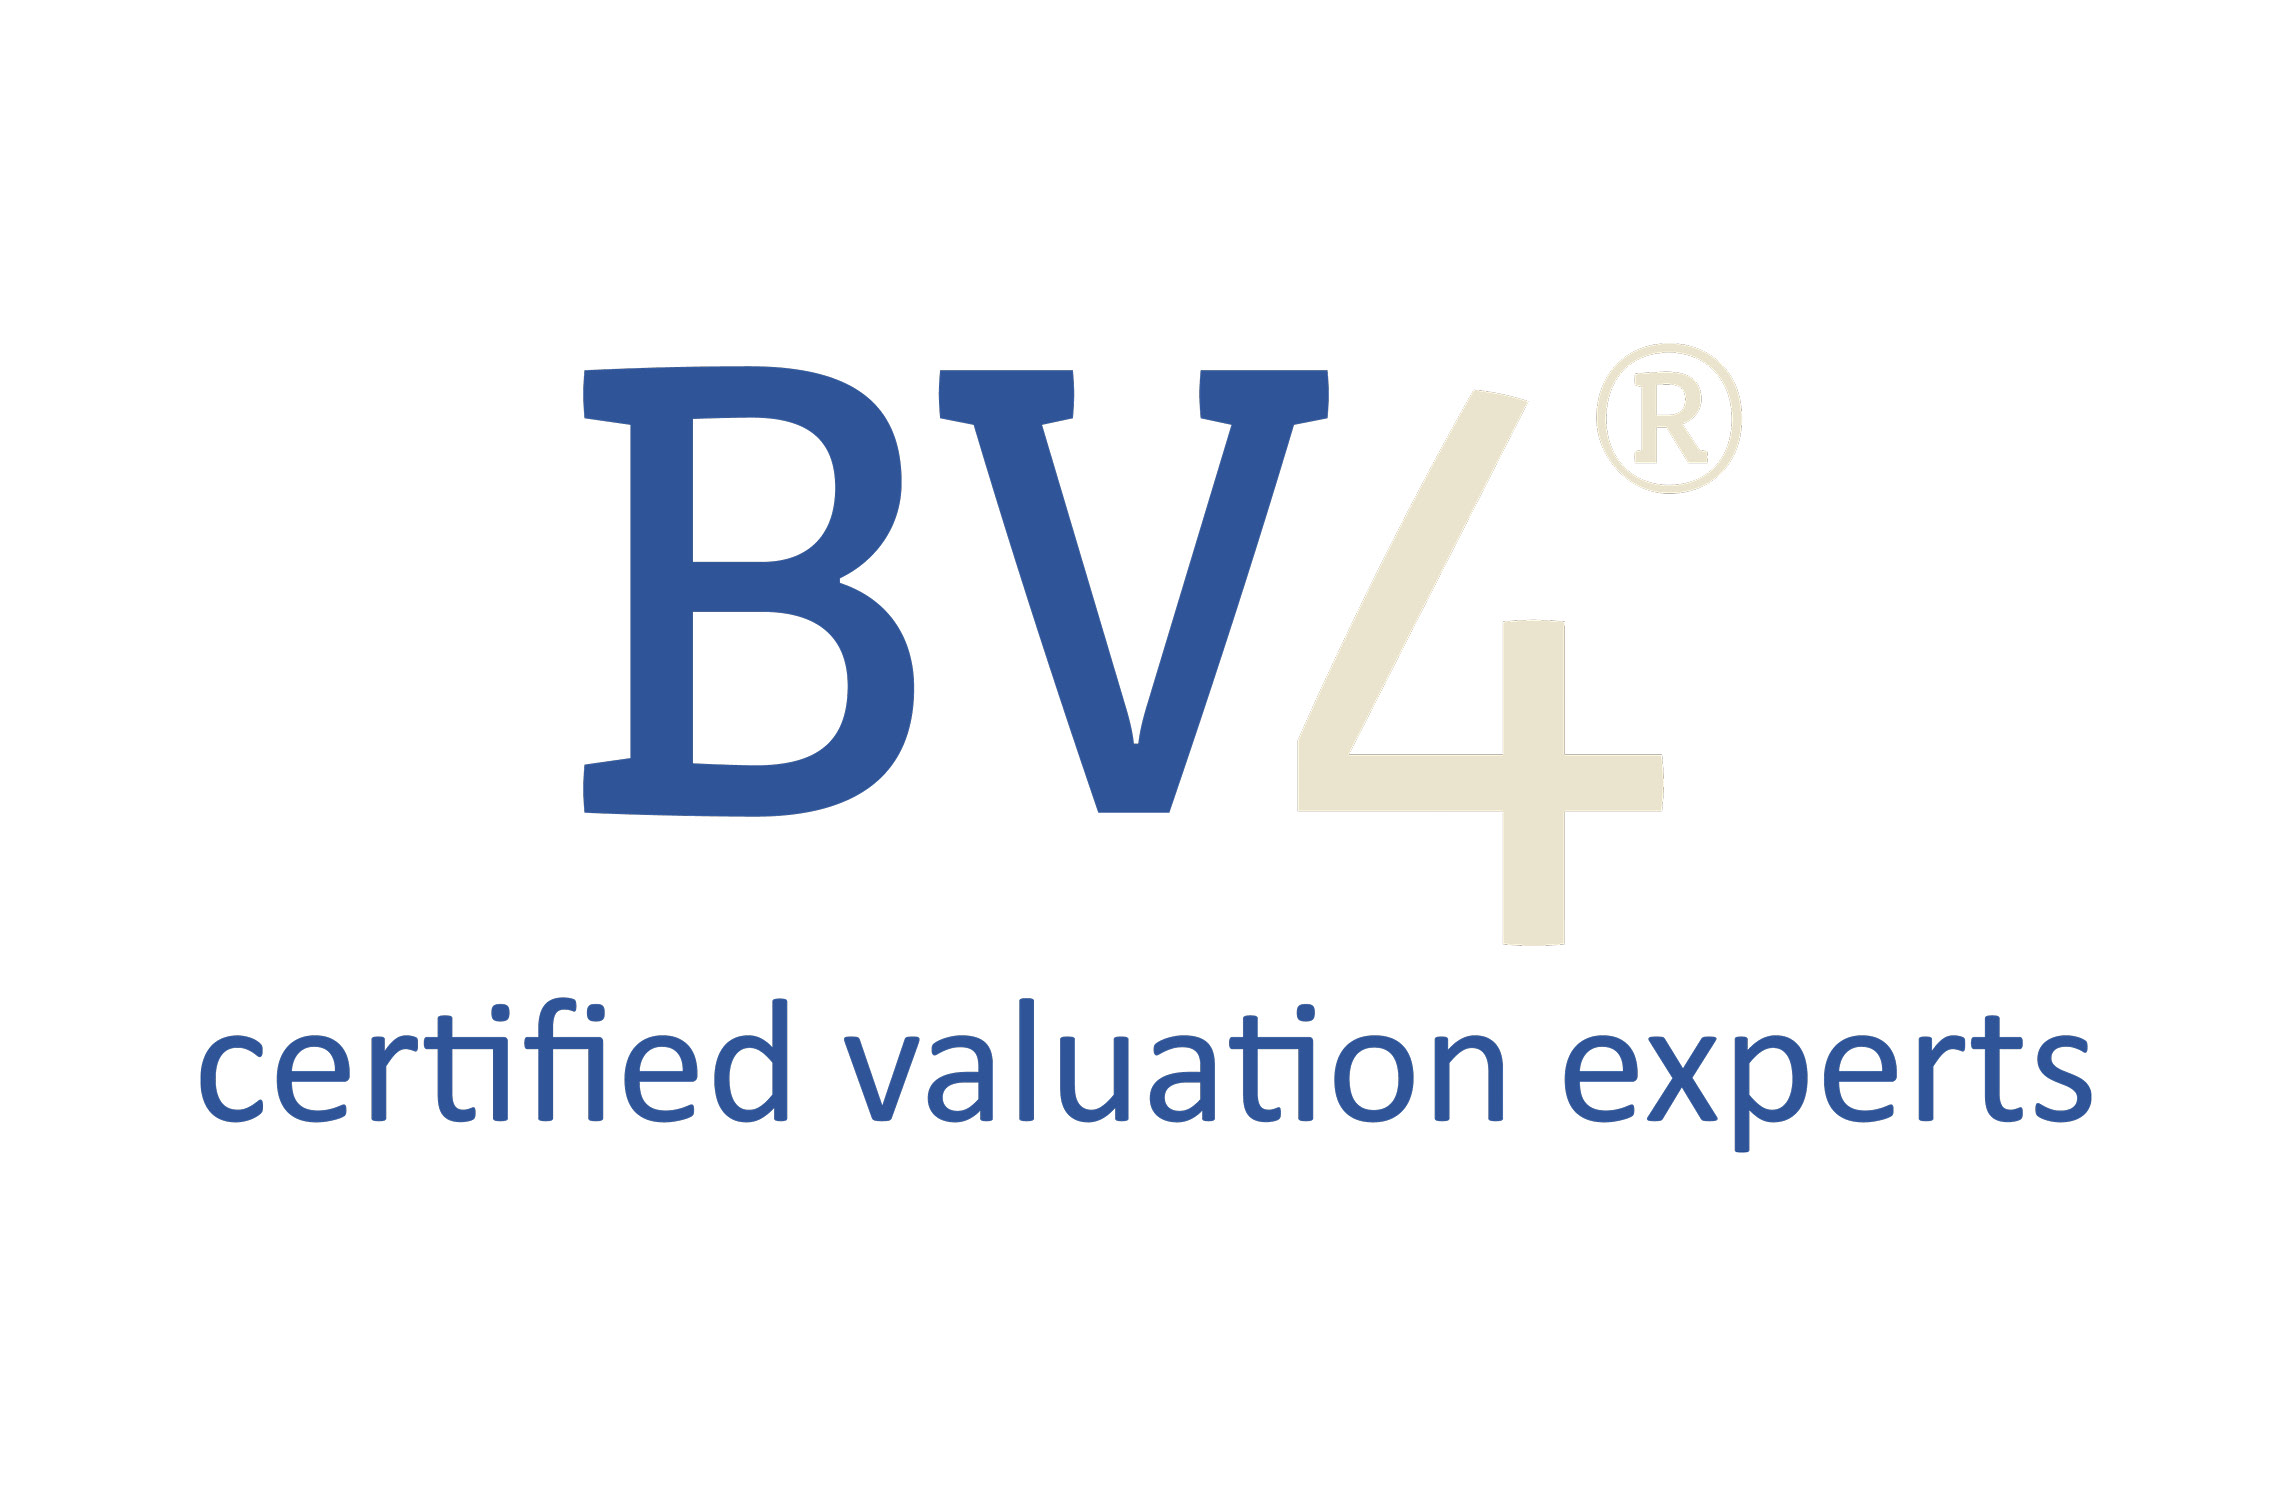 Bv4 Certified valuation experts logo